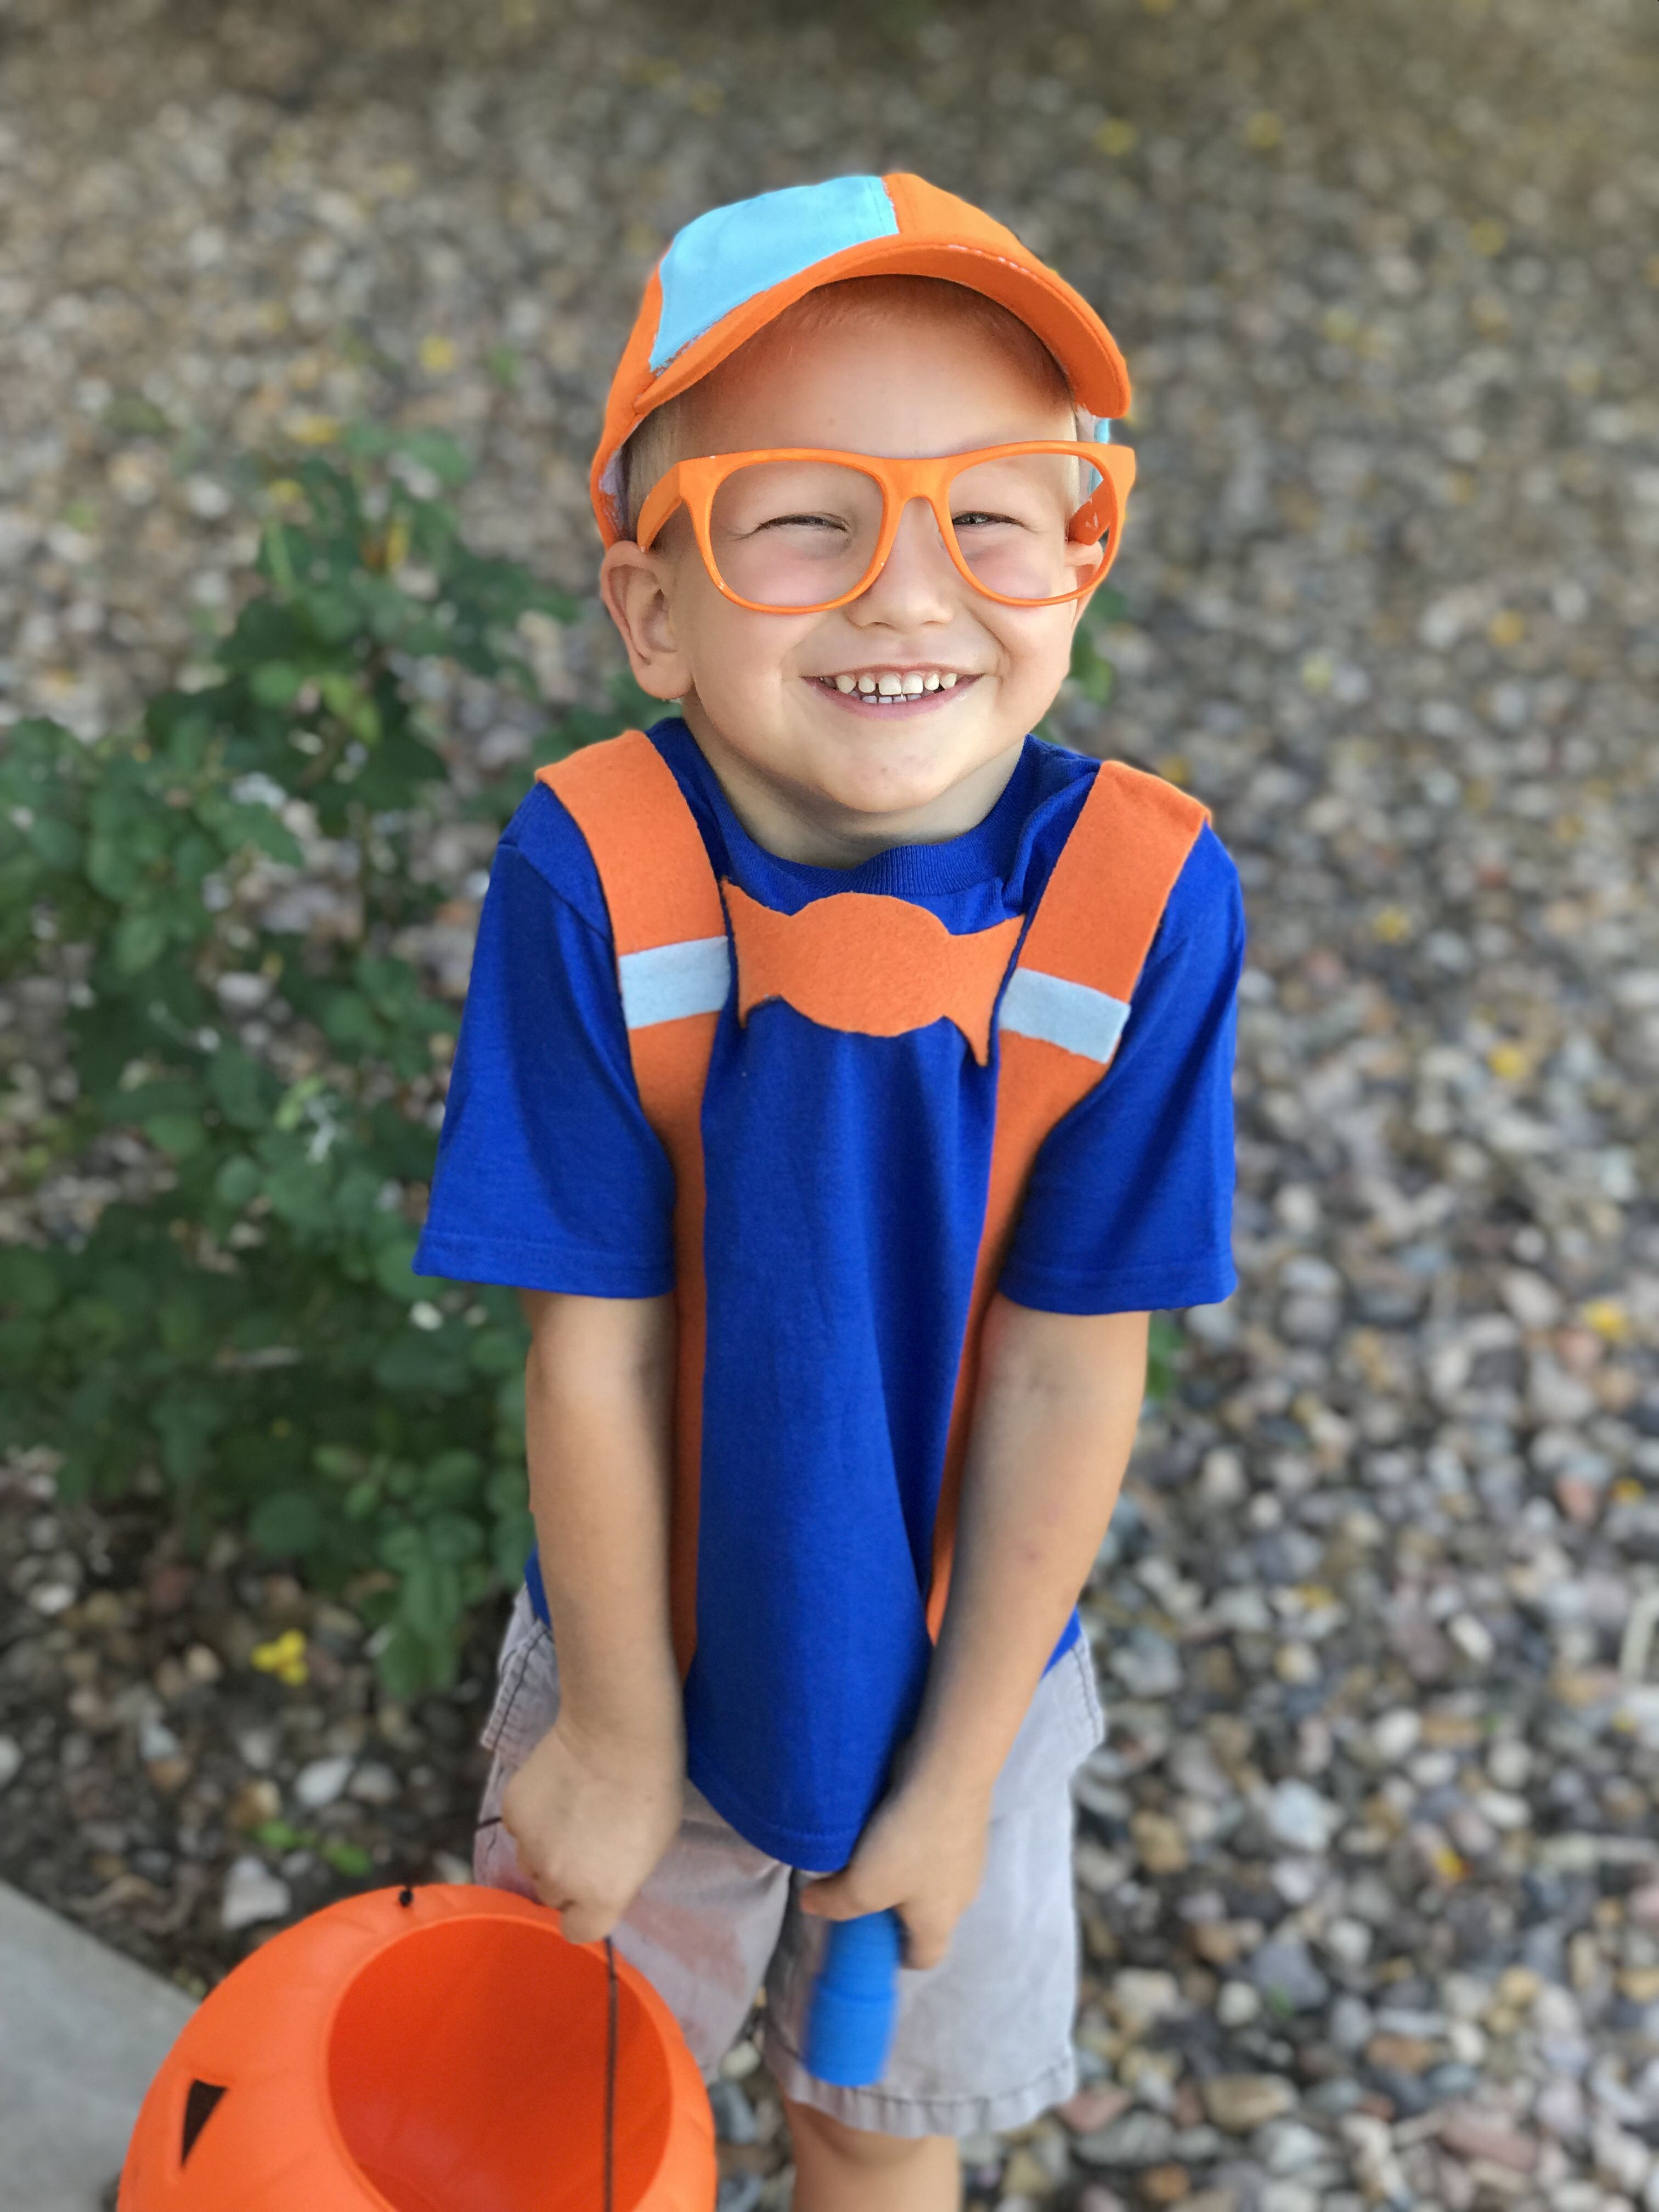 Made Our Own Blippi Costume For Our 3 Year Old This Year